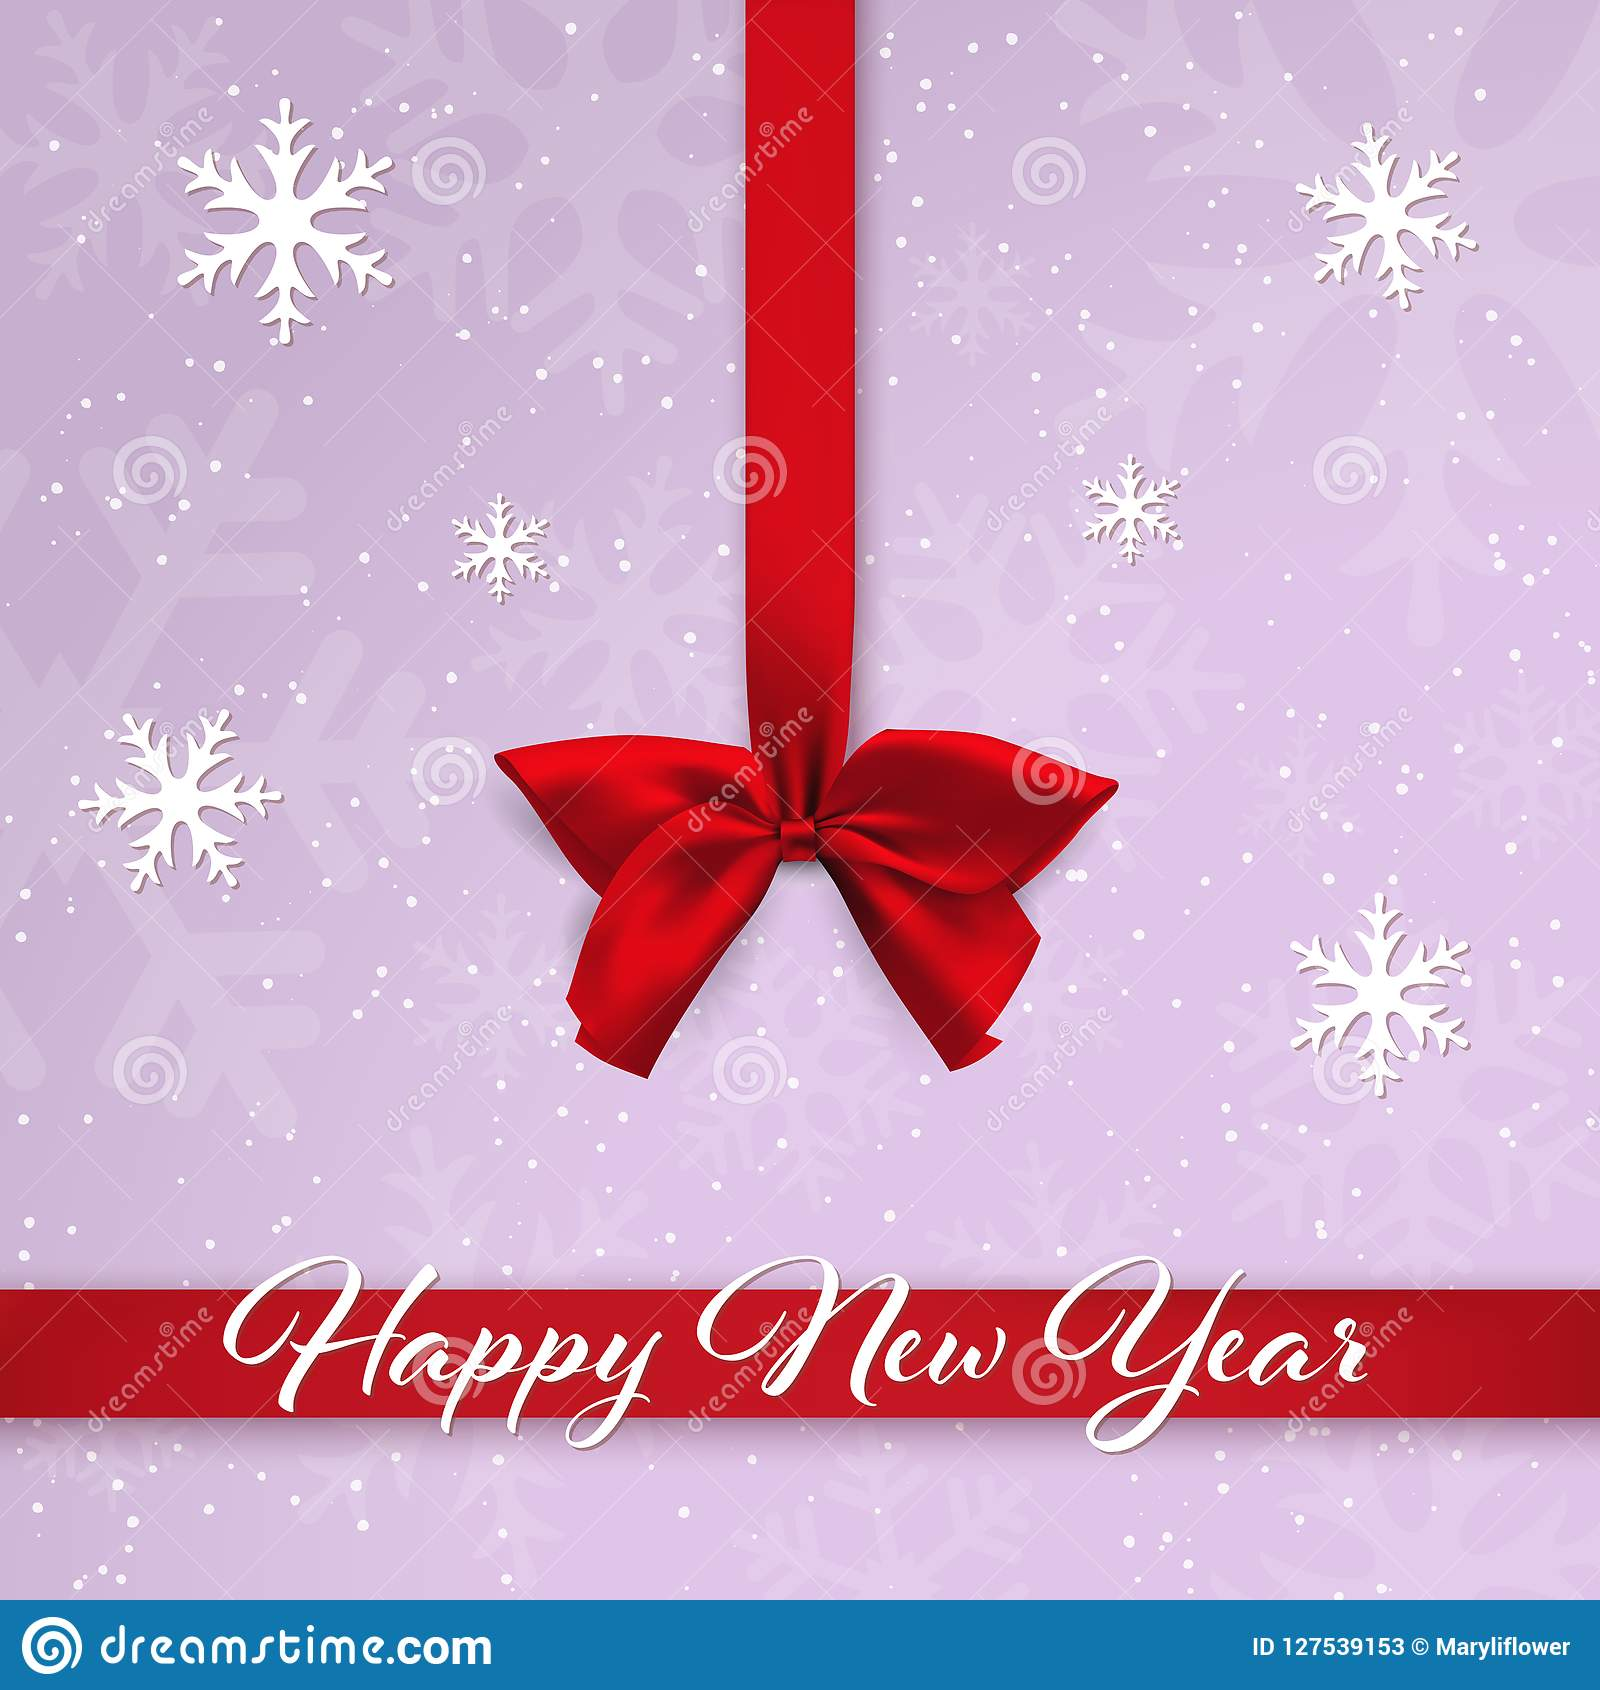 Red satin bow and ribbon on the purple background with falling snow and snowflakes. Happy New Year greeting card.